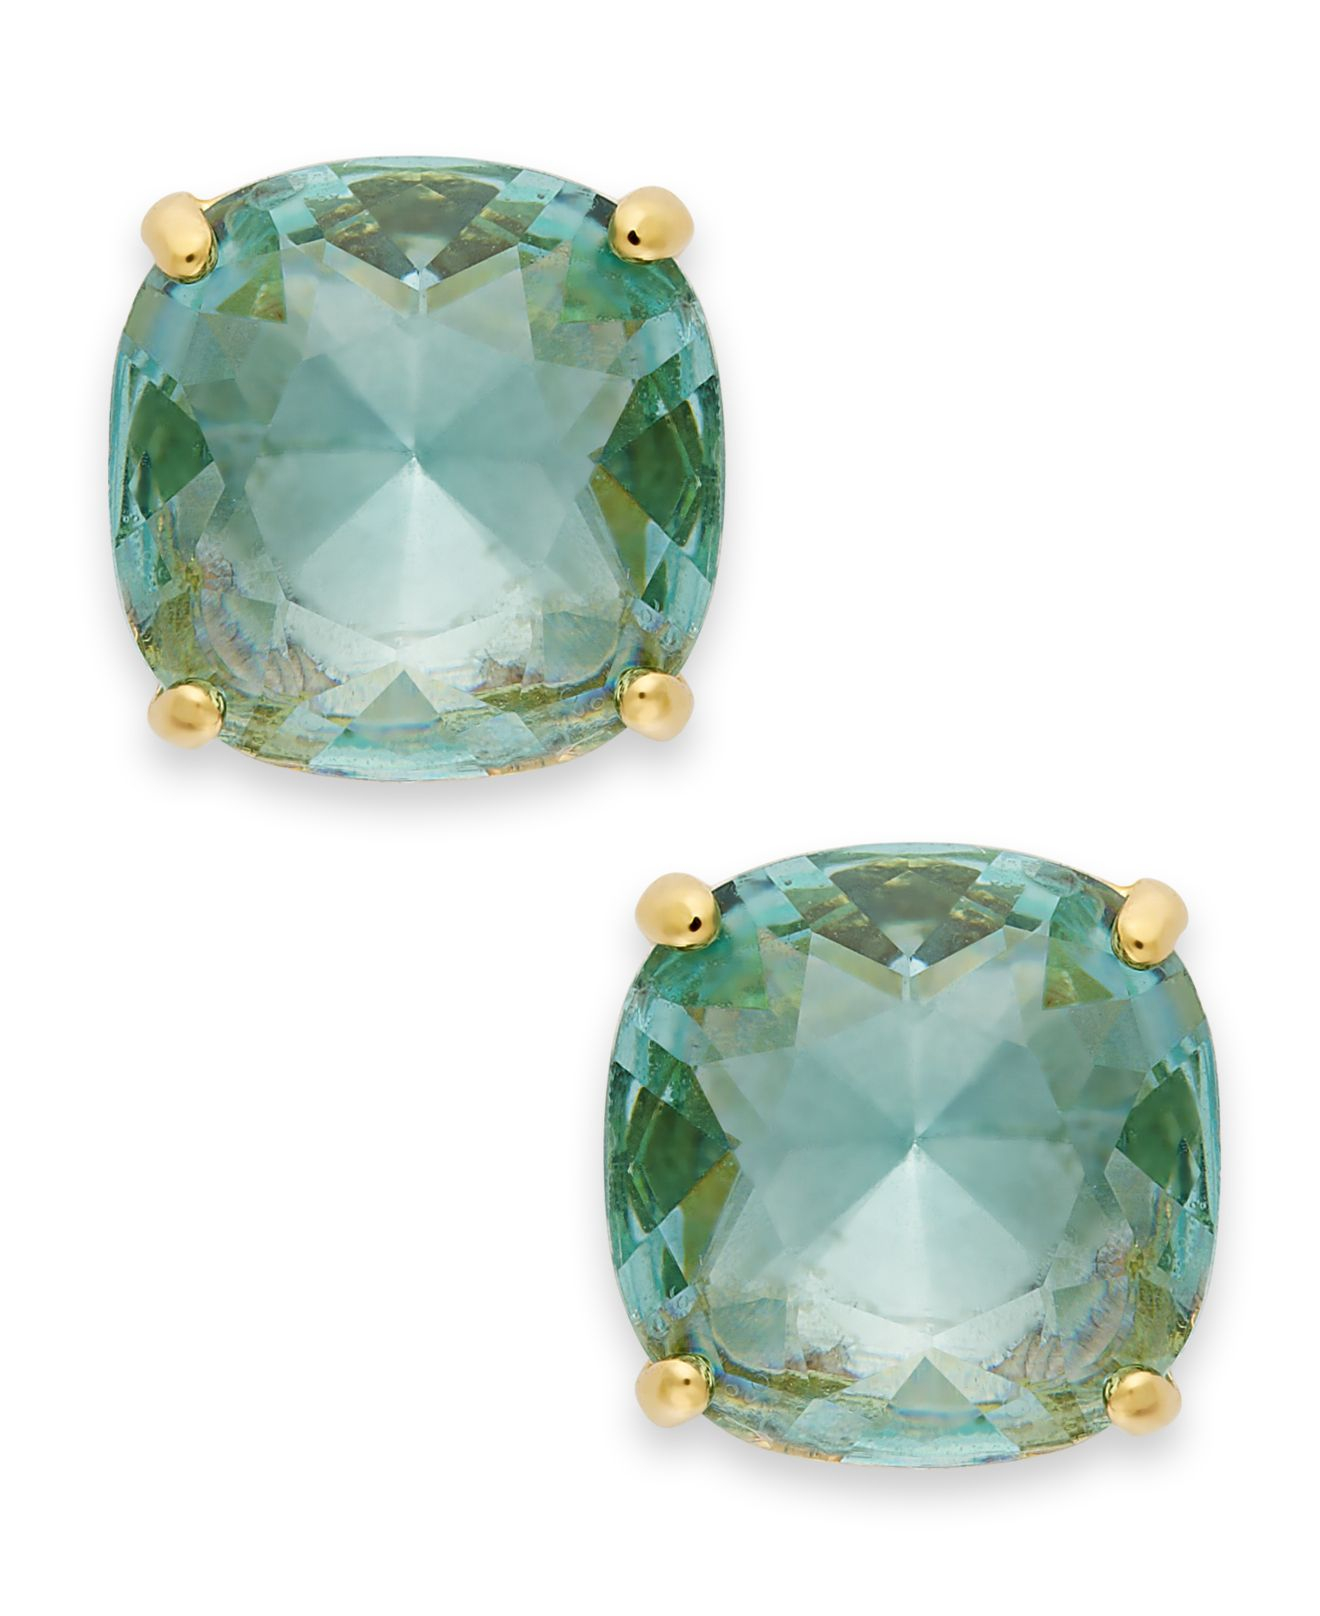 Lyst - Kate spade new york 12K Gold-Plated Blue Stone Square Stud ...